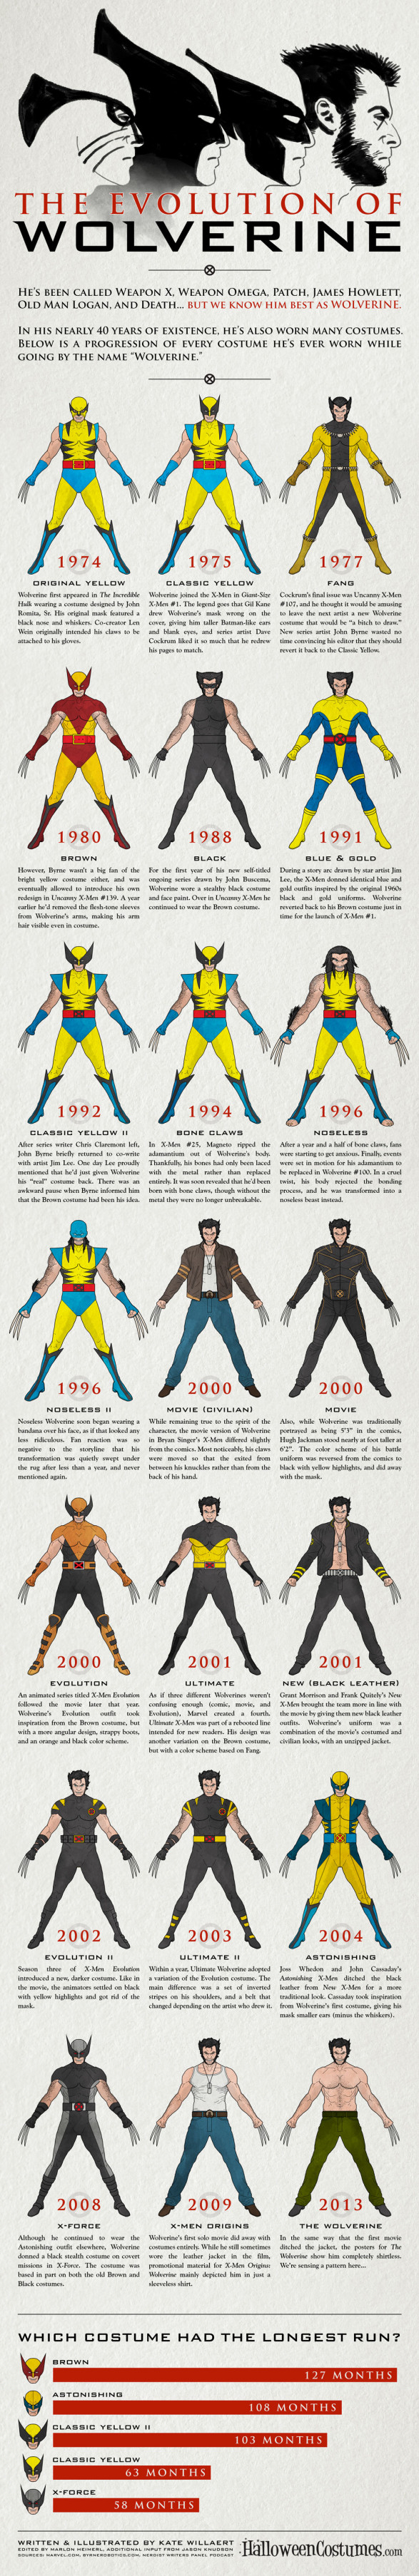 The Evolution of Wolverine